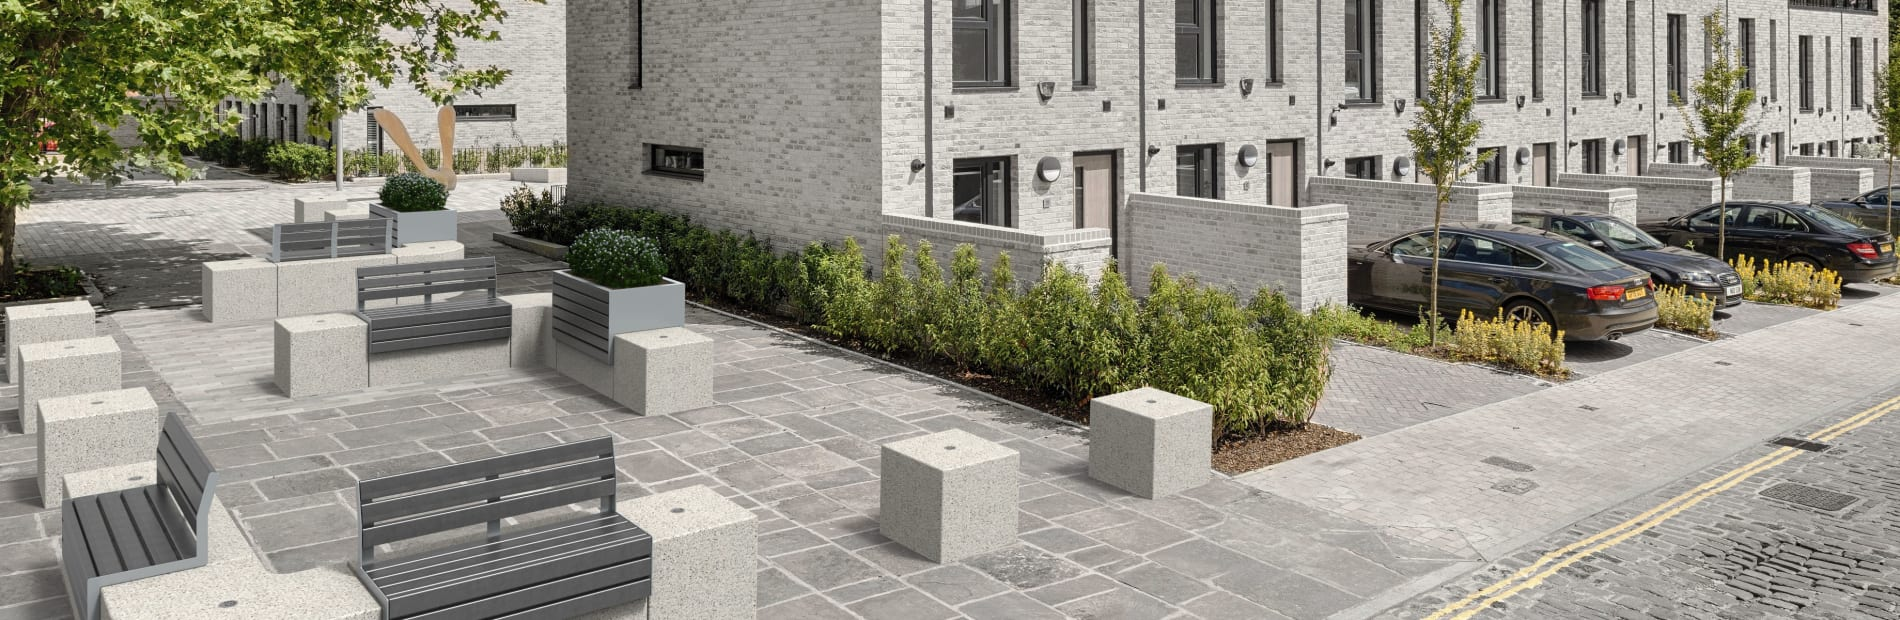 Contemporary collection of seating and planters